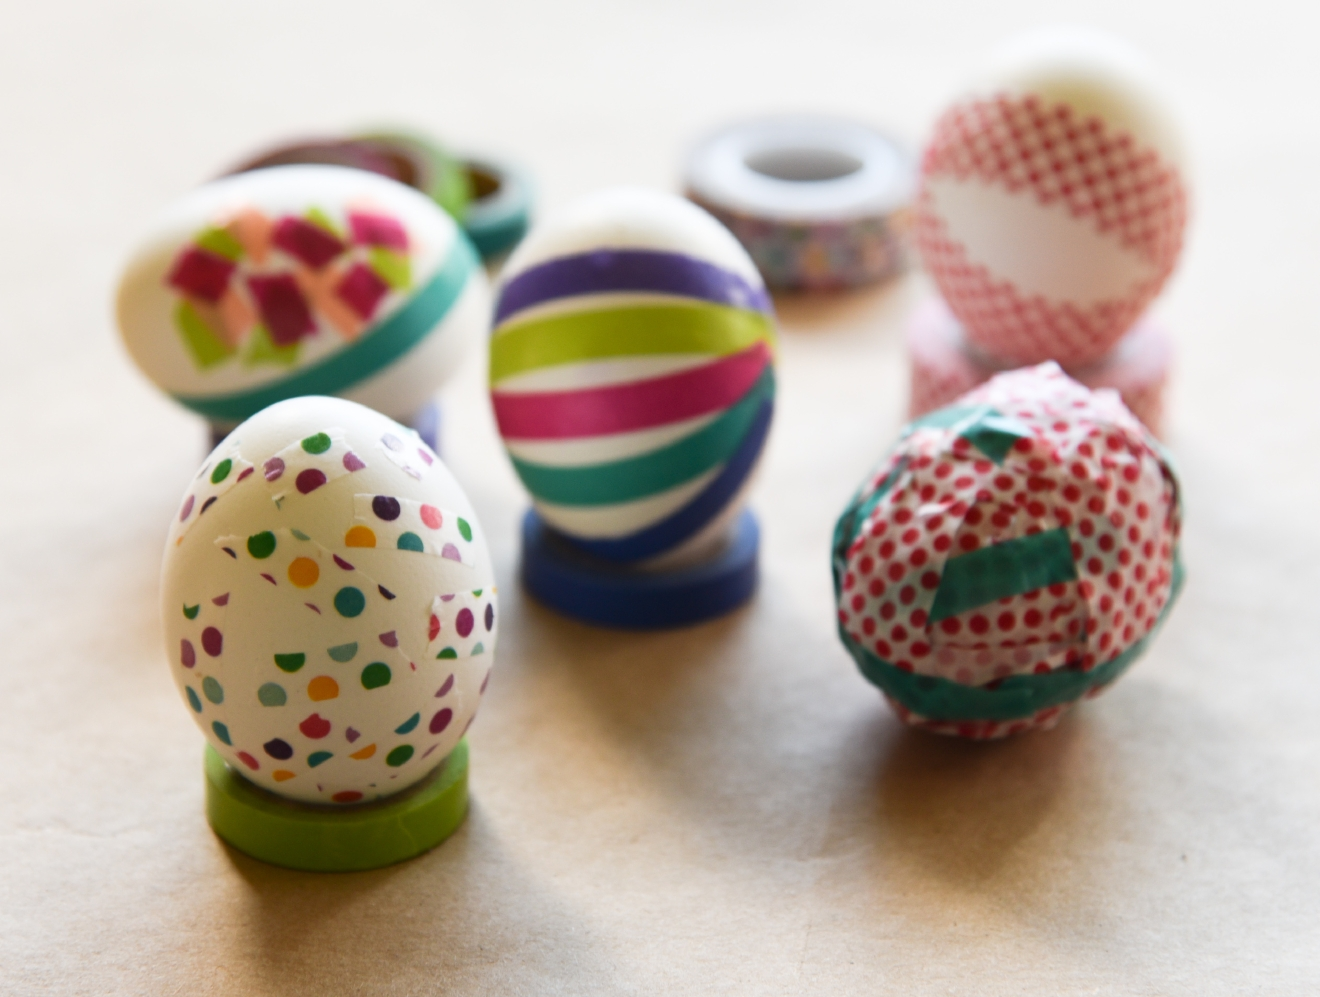 Washi Tape is a quick and fun way to decorate Easter eggs. (Image: Rebecca Mongrain/Seattle Refined)